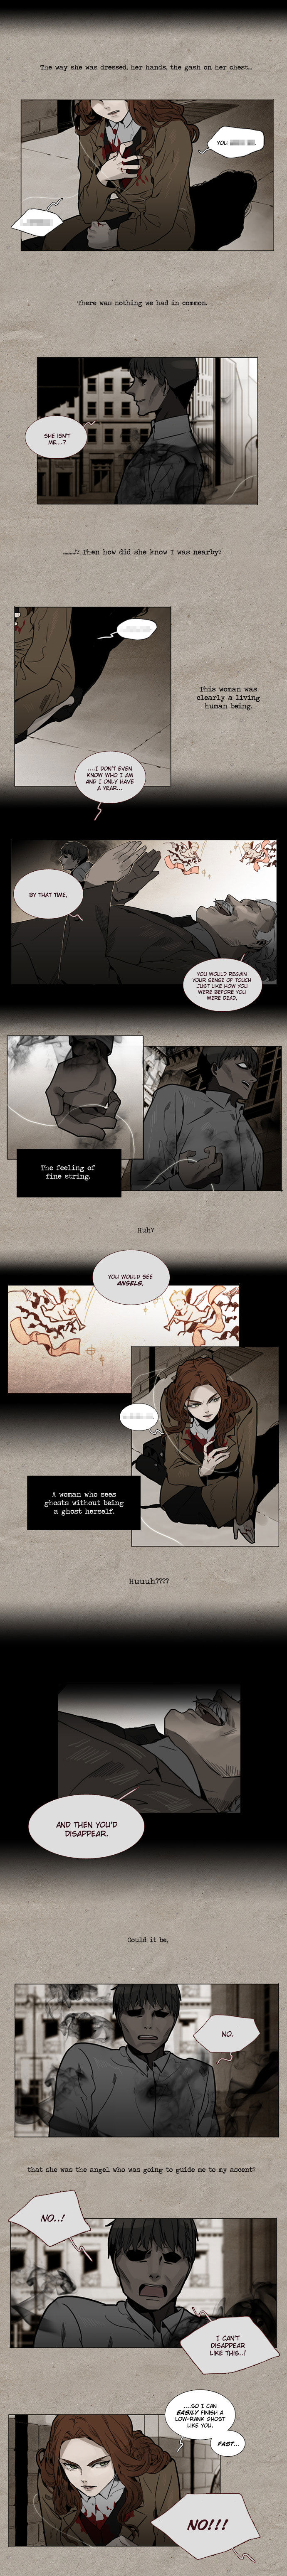 Ark of Abel 3 Page 2